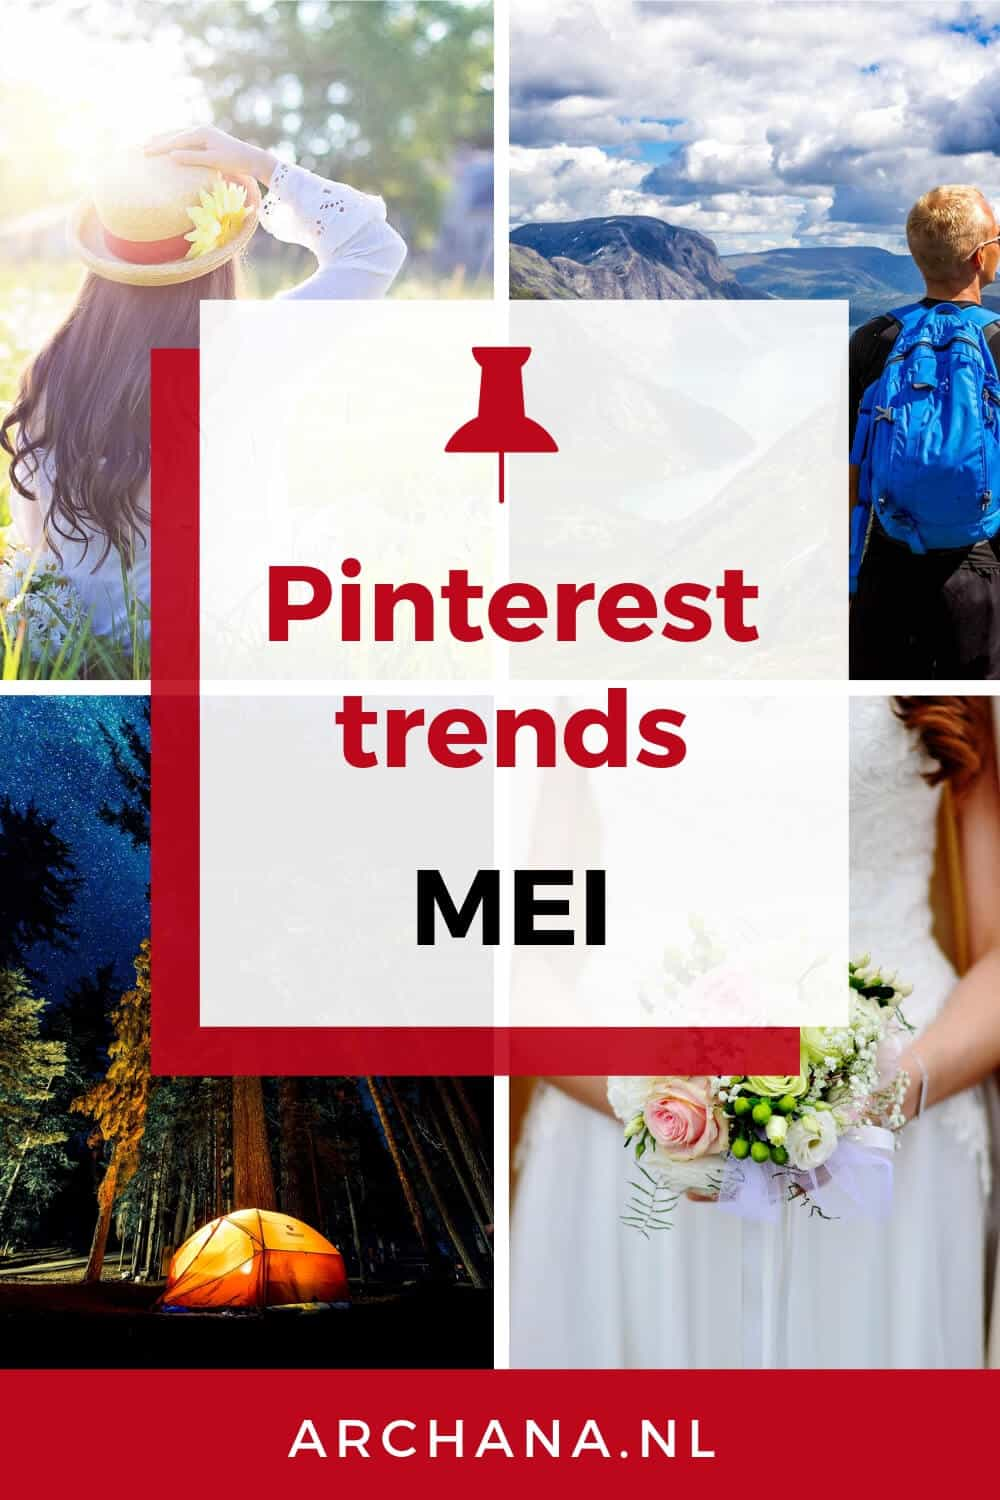 Pinterest trends voor mei: Wat ga je pinnen in mei - ARCHANA.NL #pinterestmarketing #pinteresttips